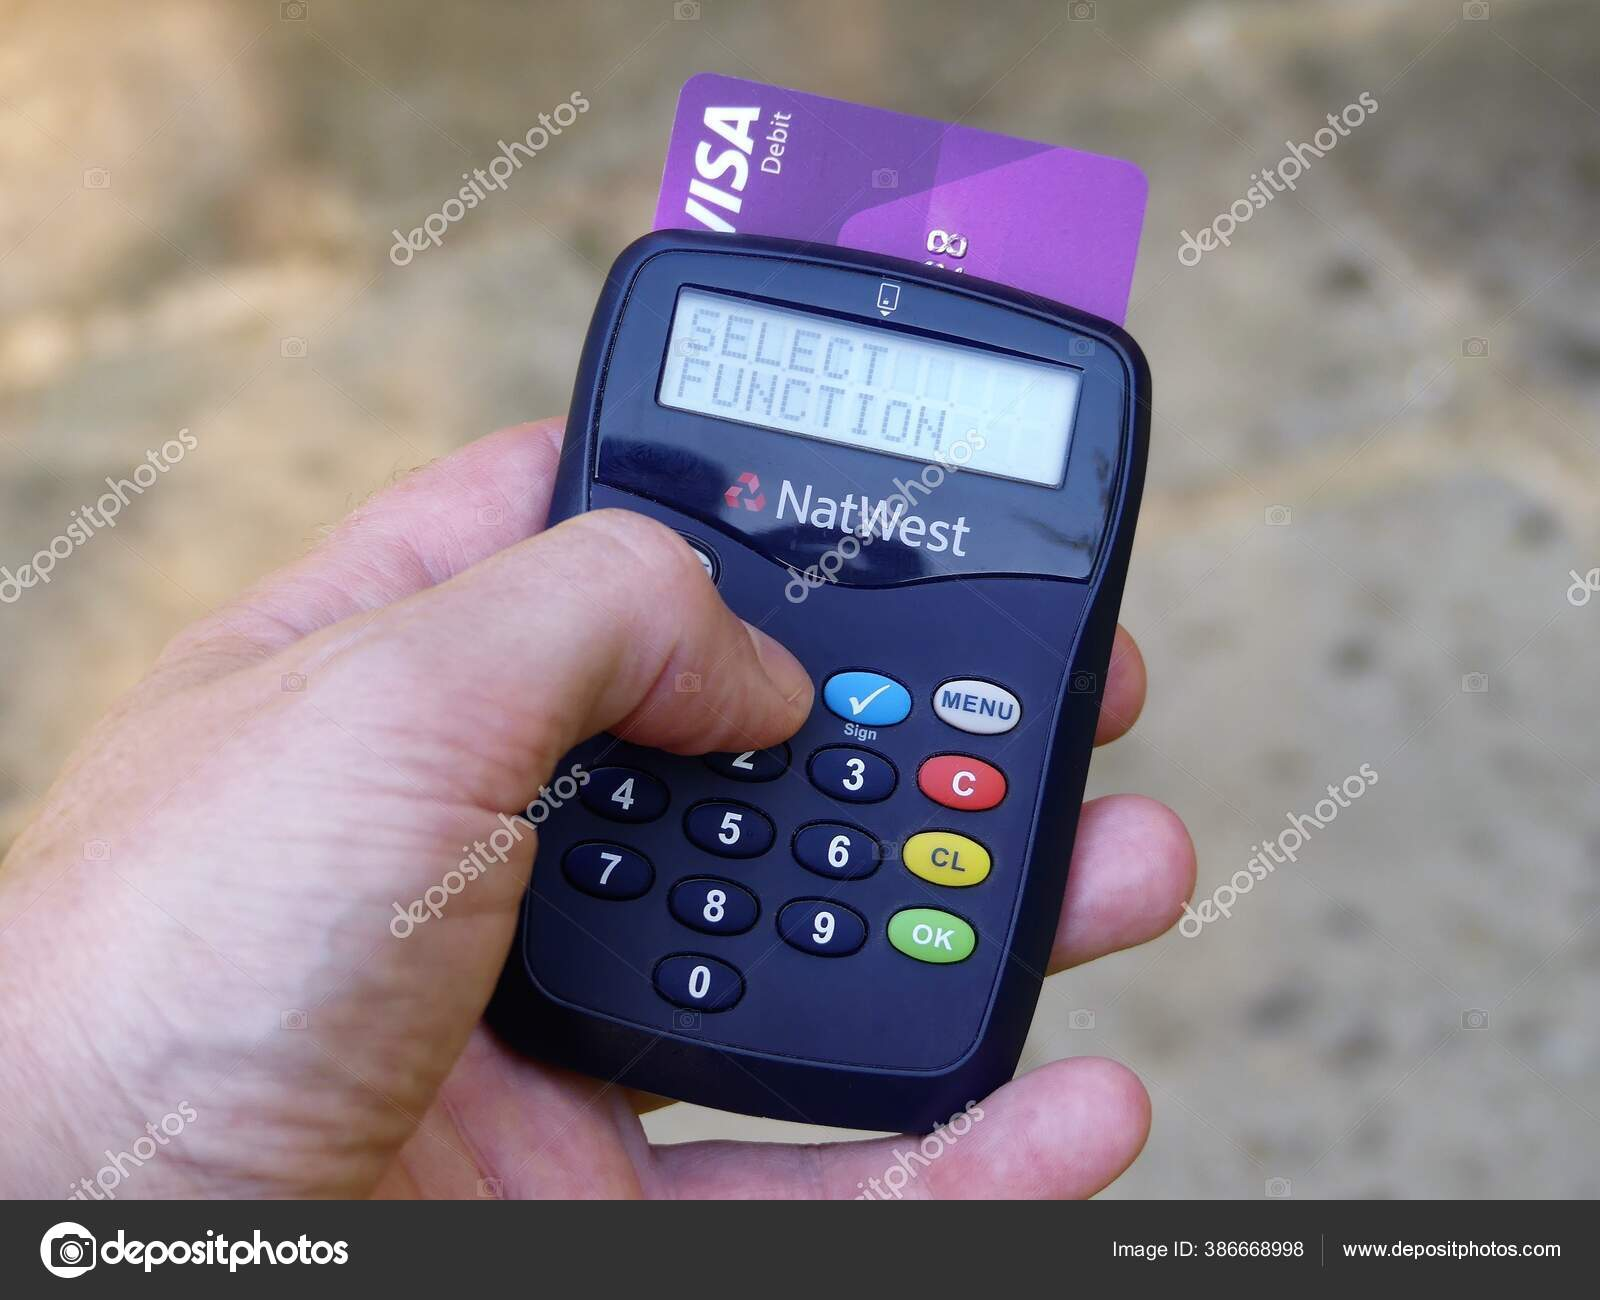 Natwest Your Card Reader Is An Essential Piece Of Kit Facebook